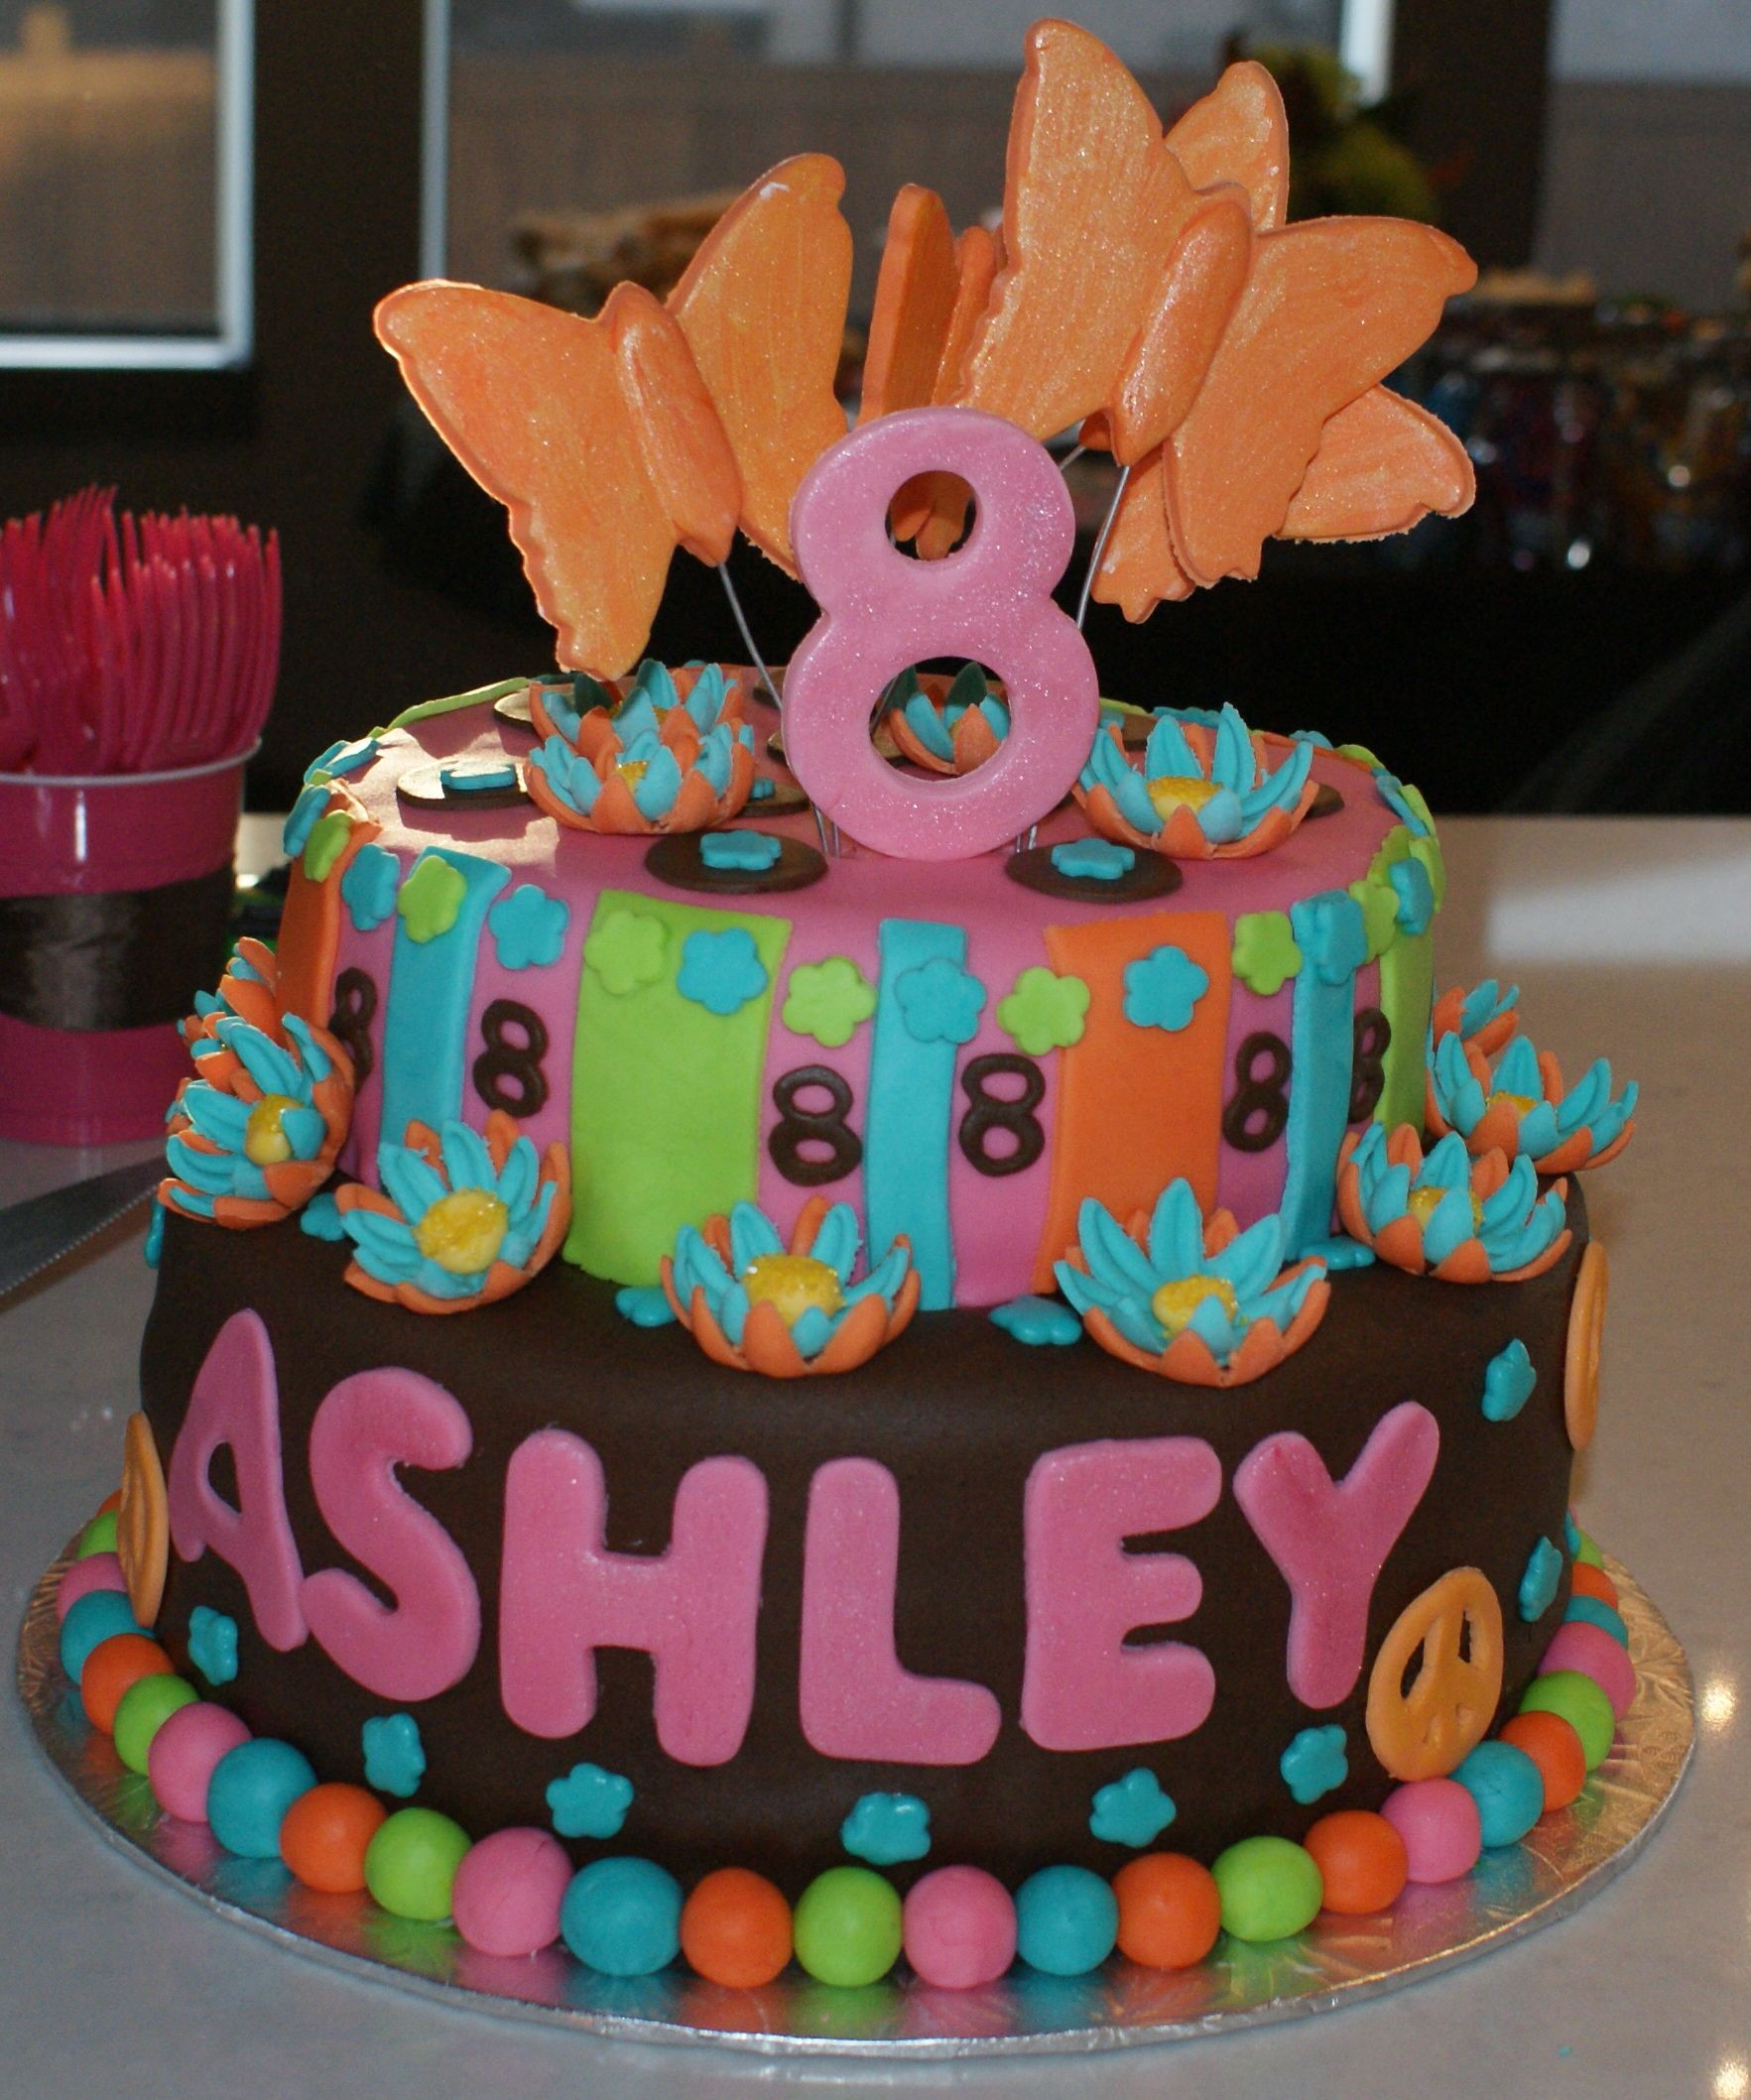 8Th Birthday Cake Ideas http://simplyjenny.webs.com/apps/photos/photo?photoid=103748006